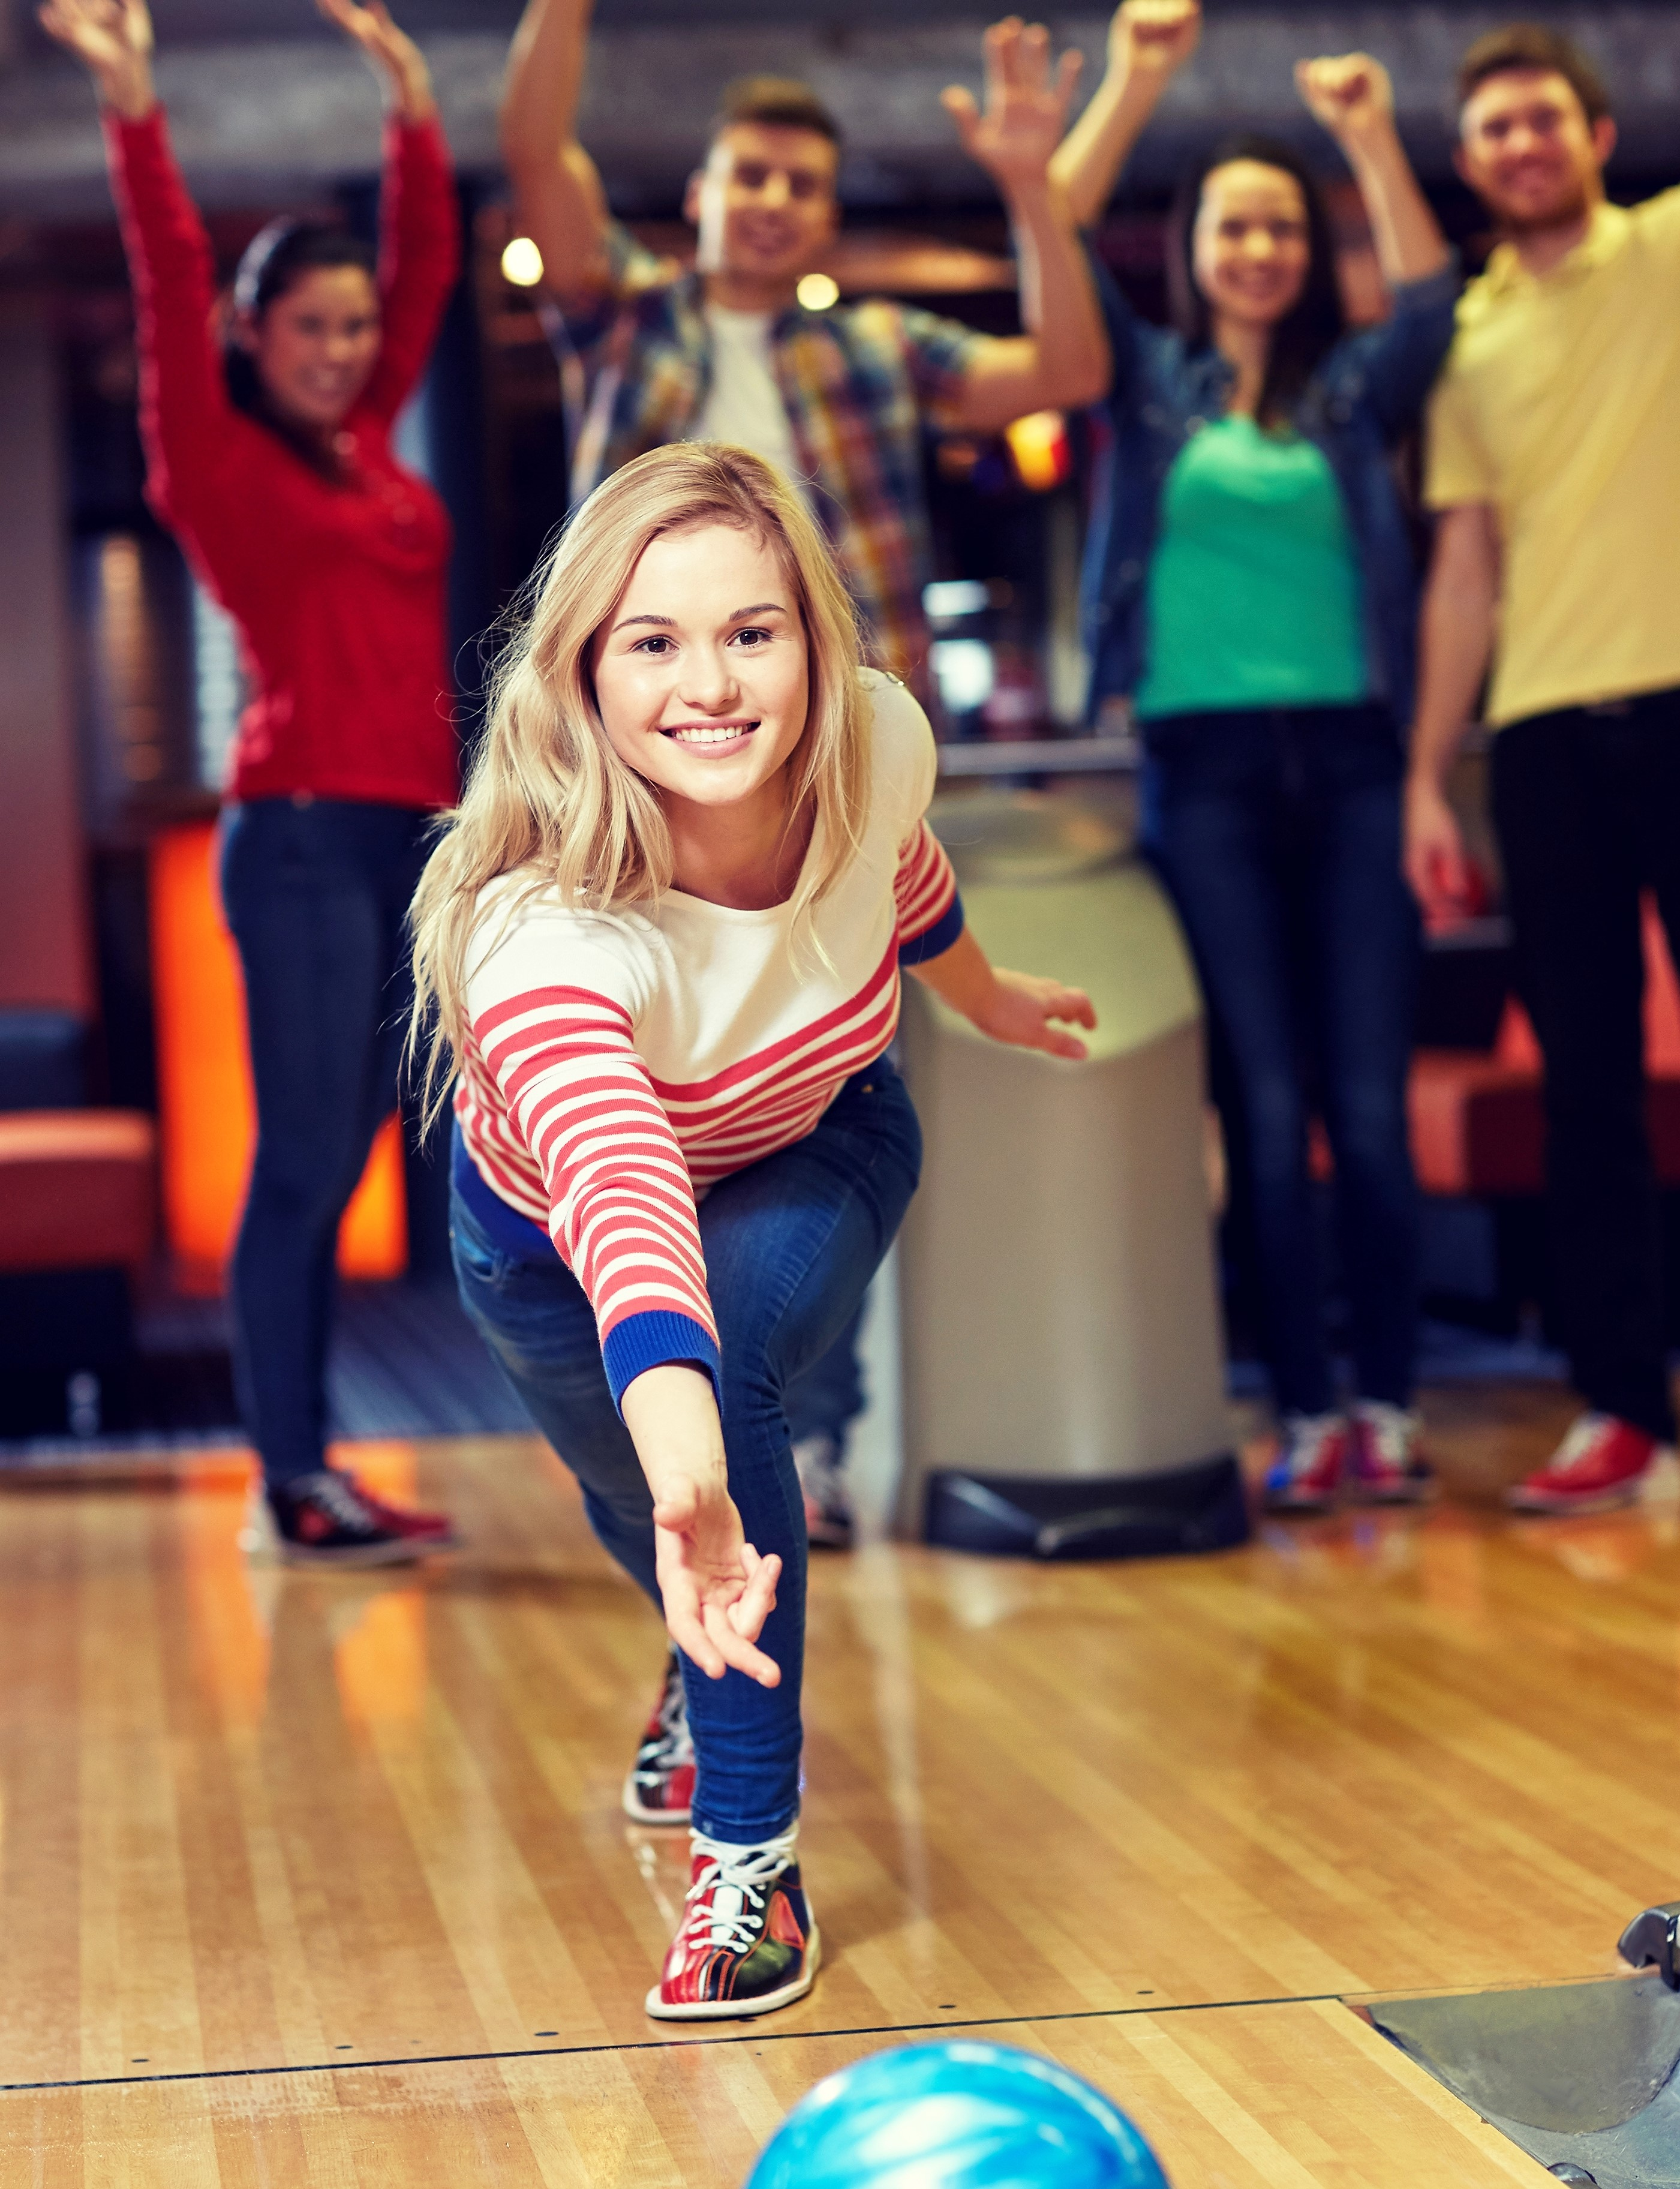 young woman bowling | casual bowling | open bowling | bowling club | bowling with friends | Odyssey Fun Center | Sheboygan, WI